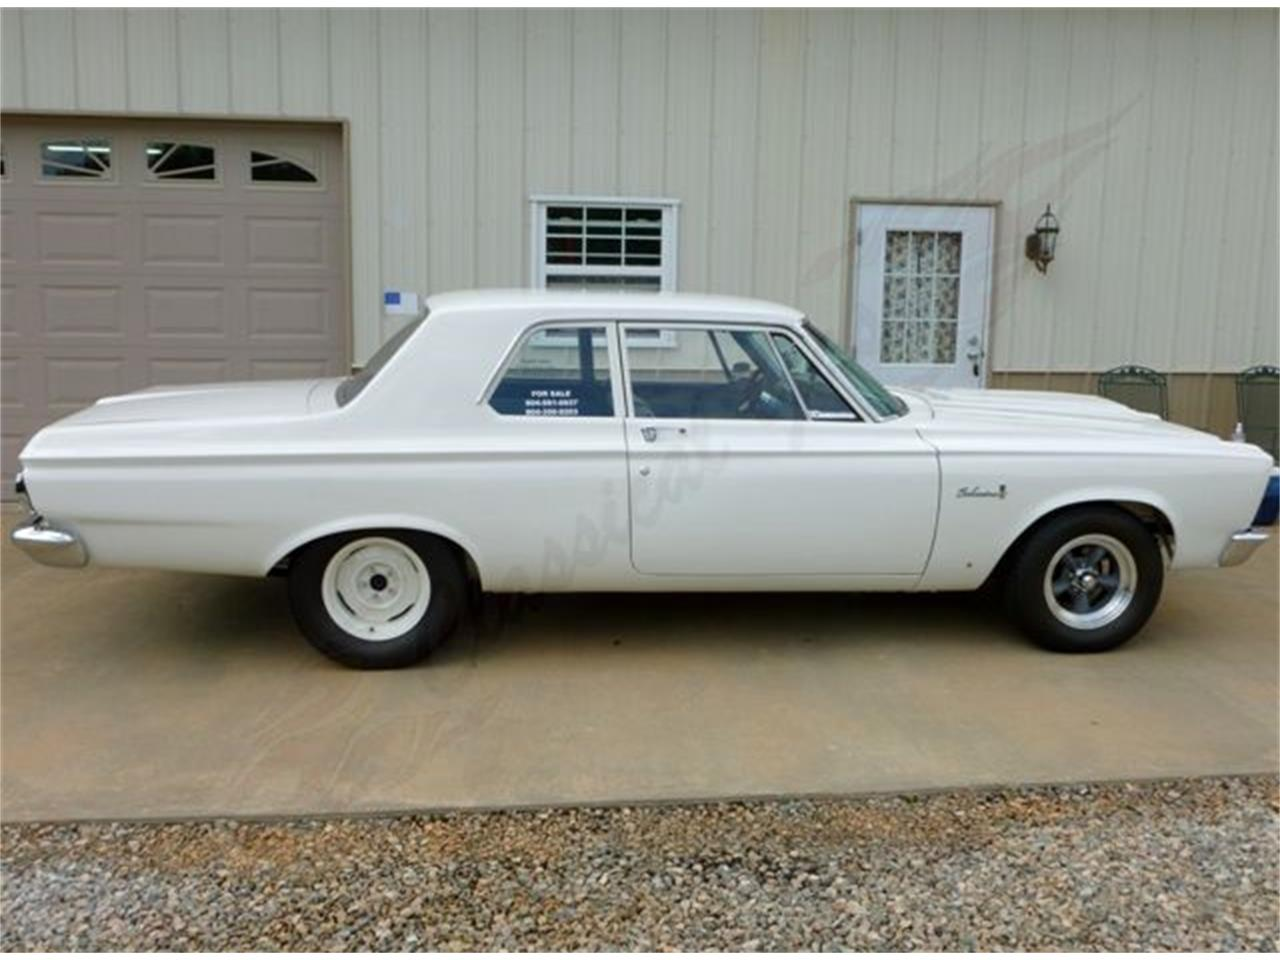 Enterprise Cars For Sale >> 1965 Plymouth Belvedere for Sale | ClassicCars.com | CC-447321